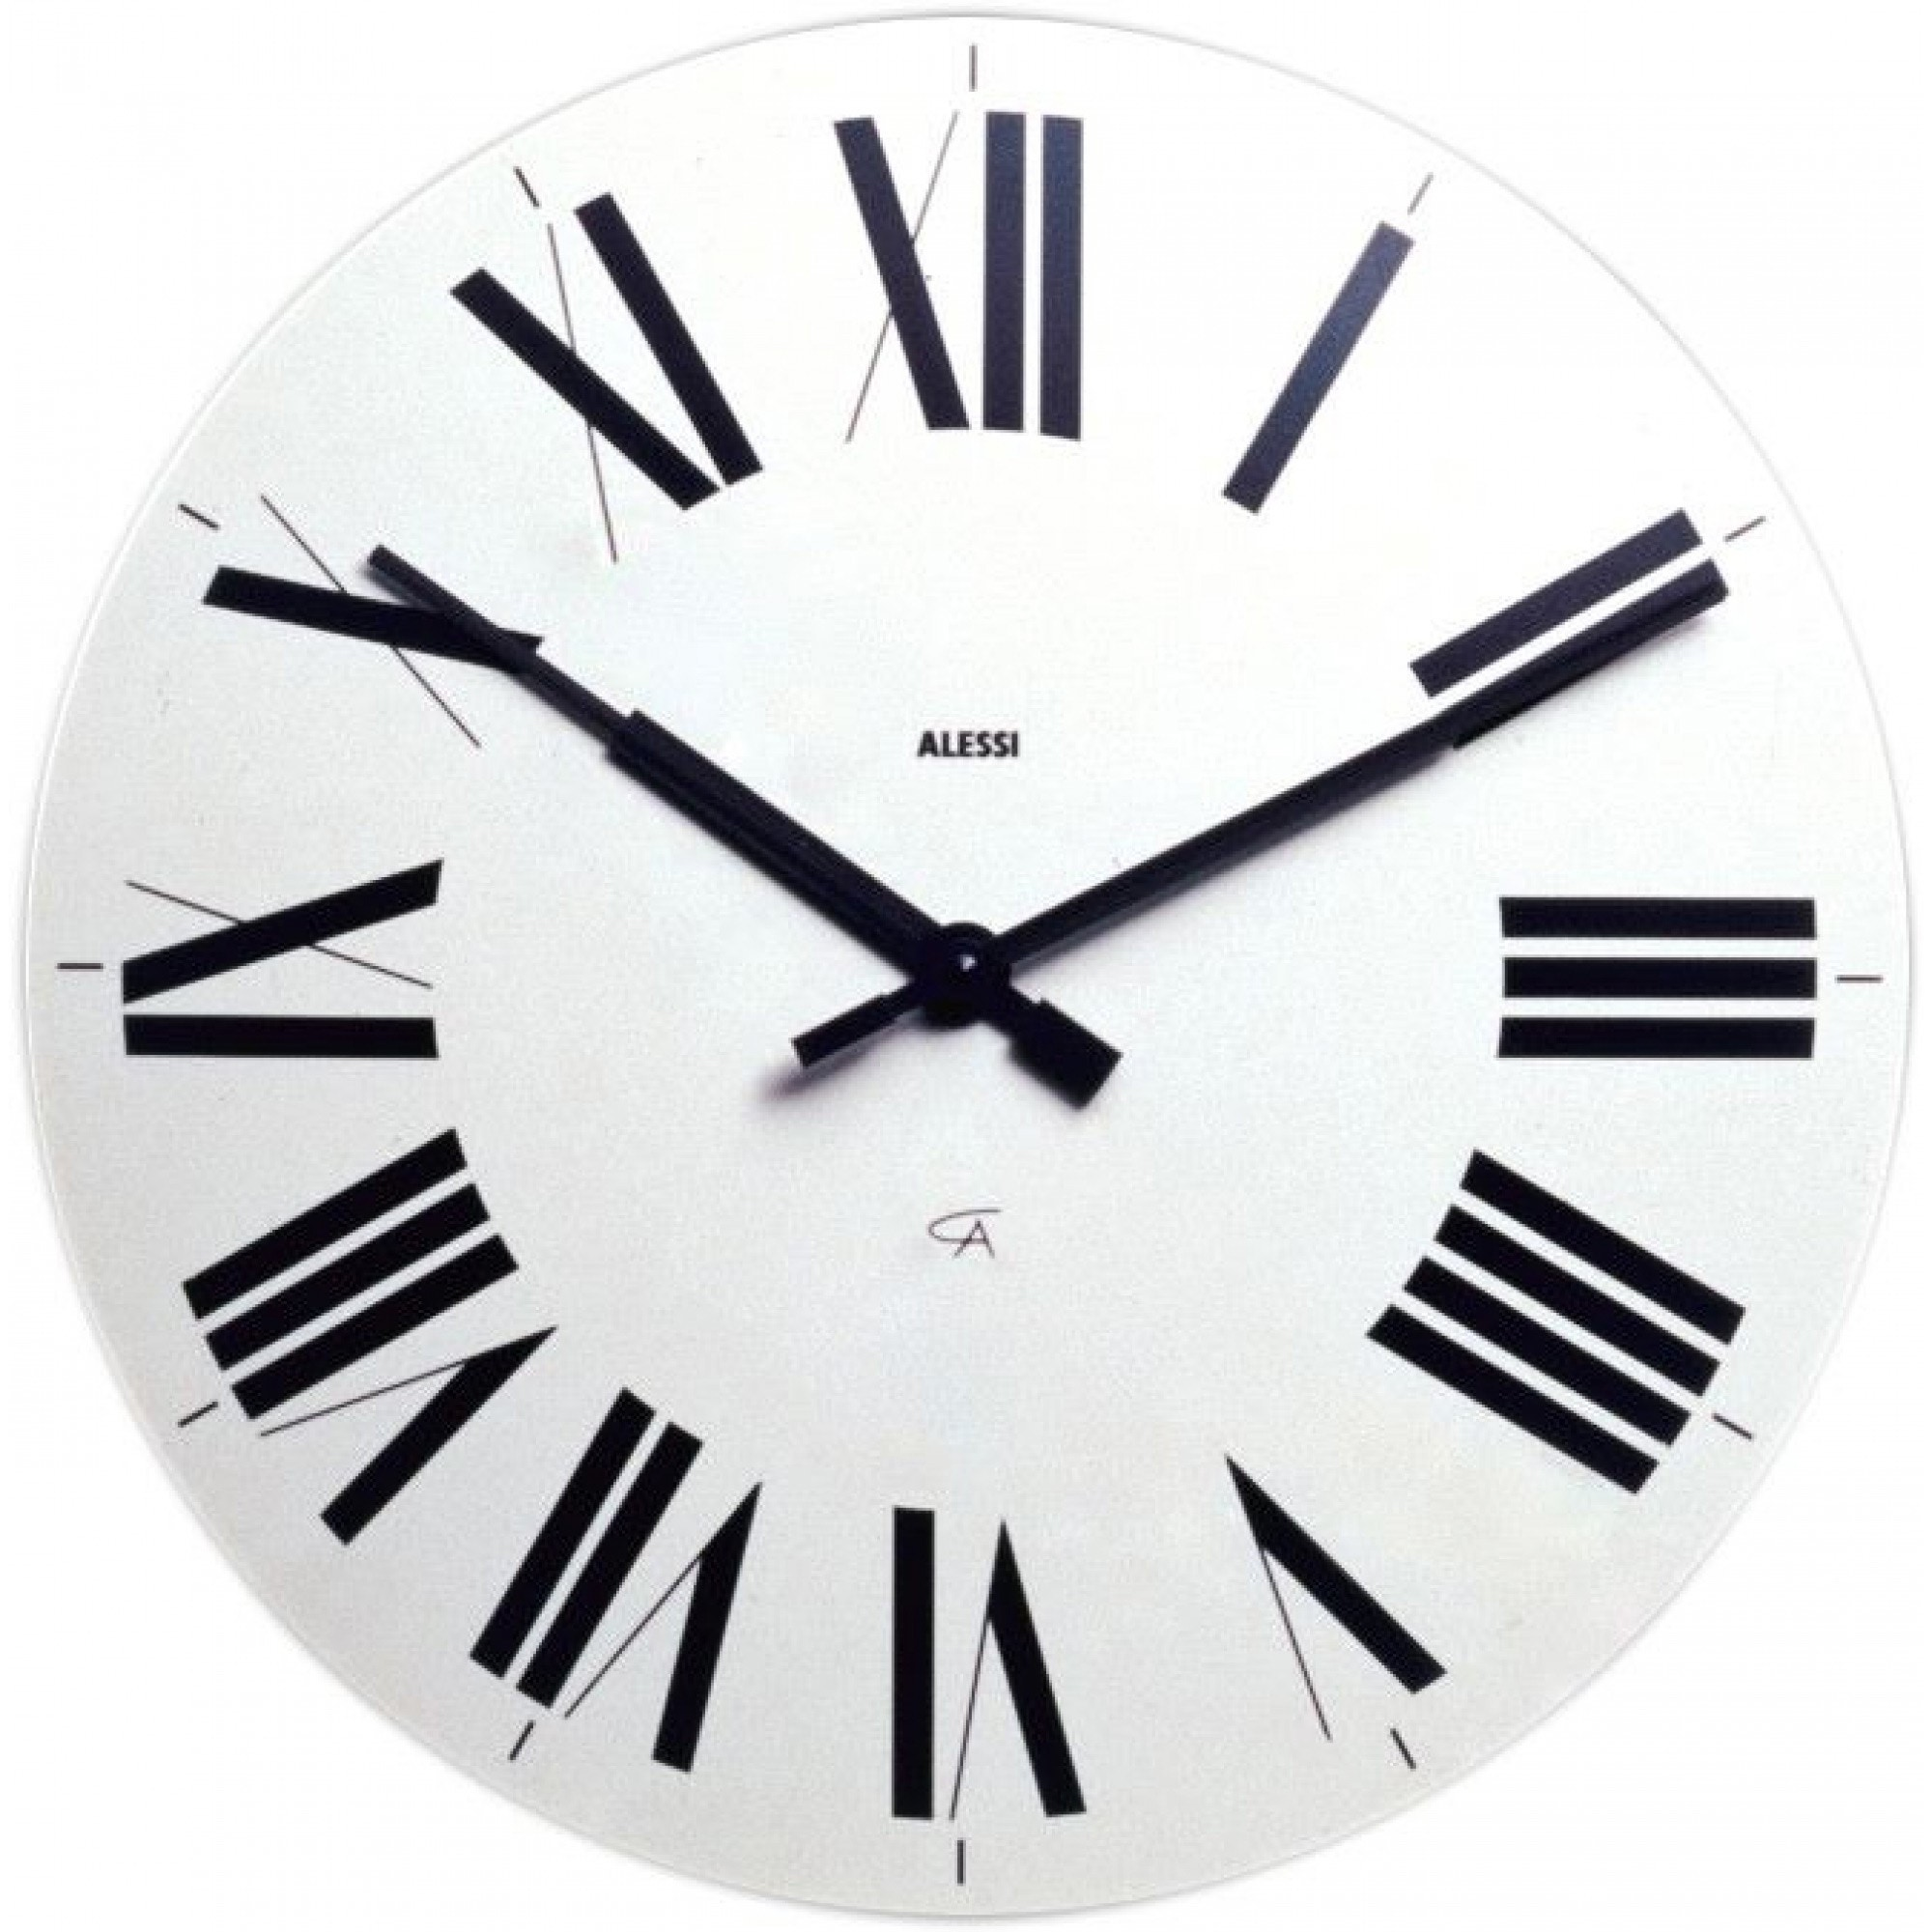 Alessi 12 Firenze Wall Clock